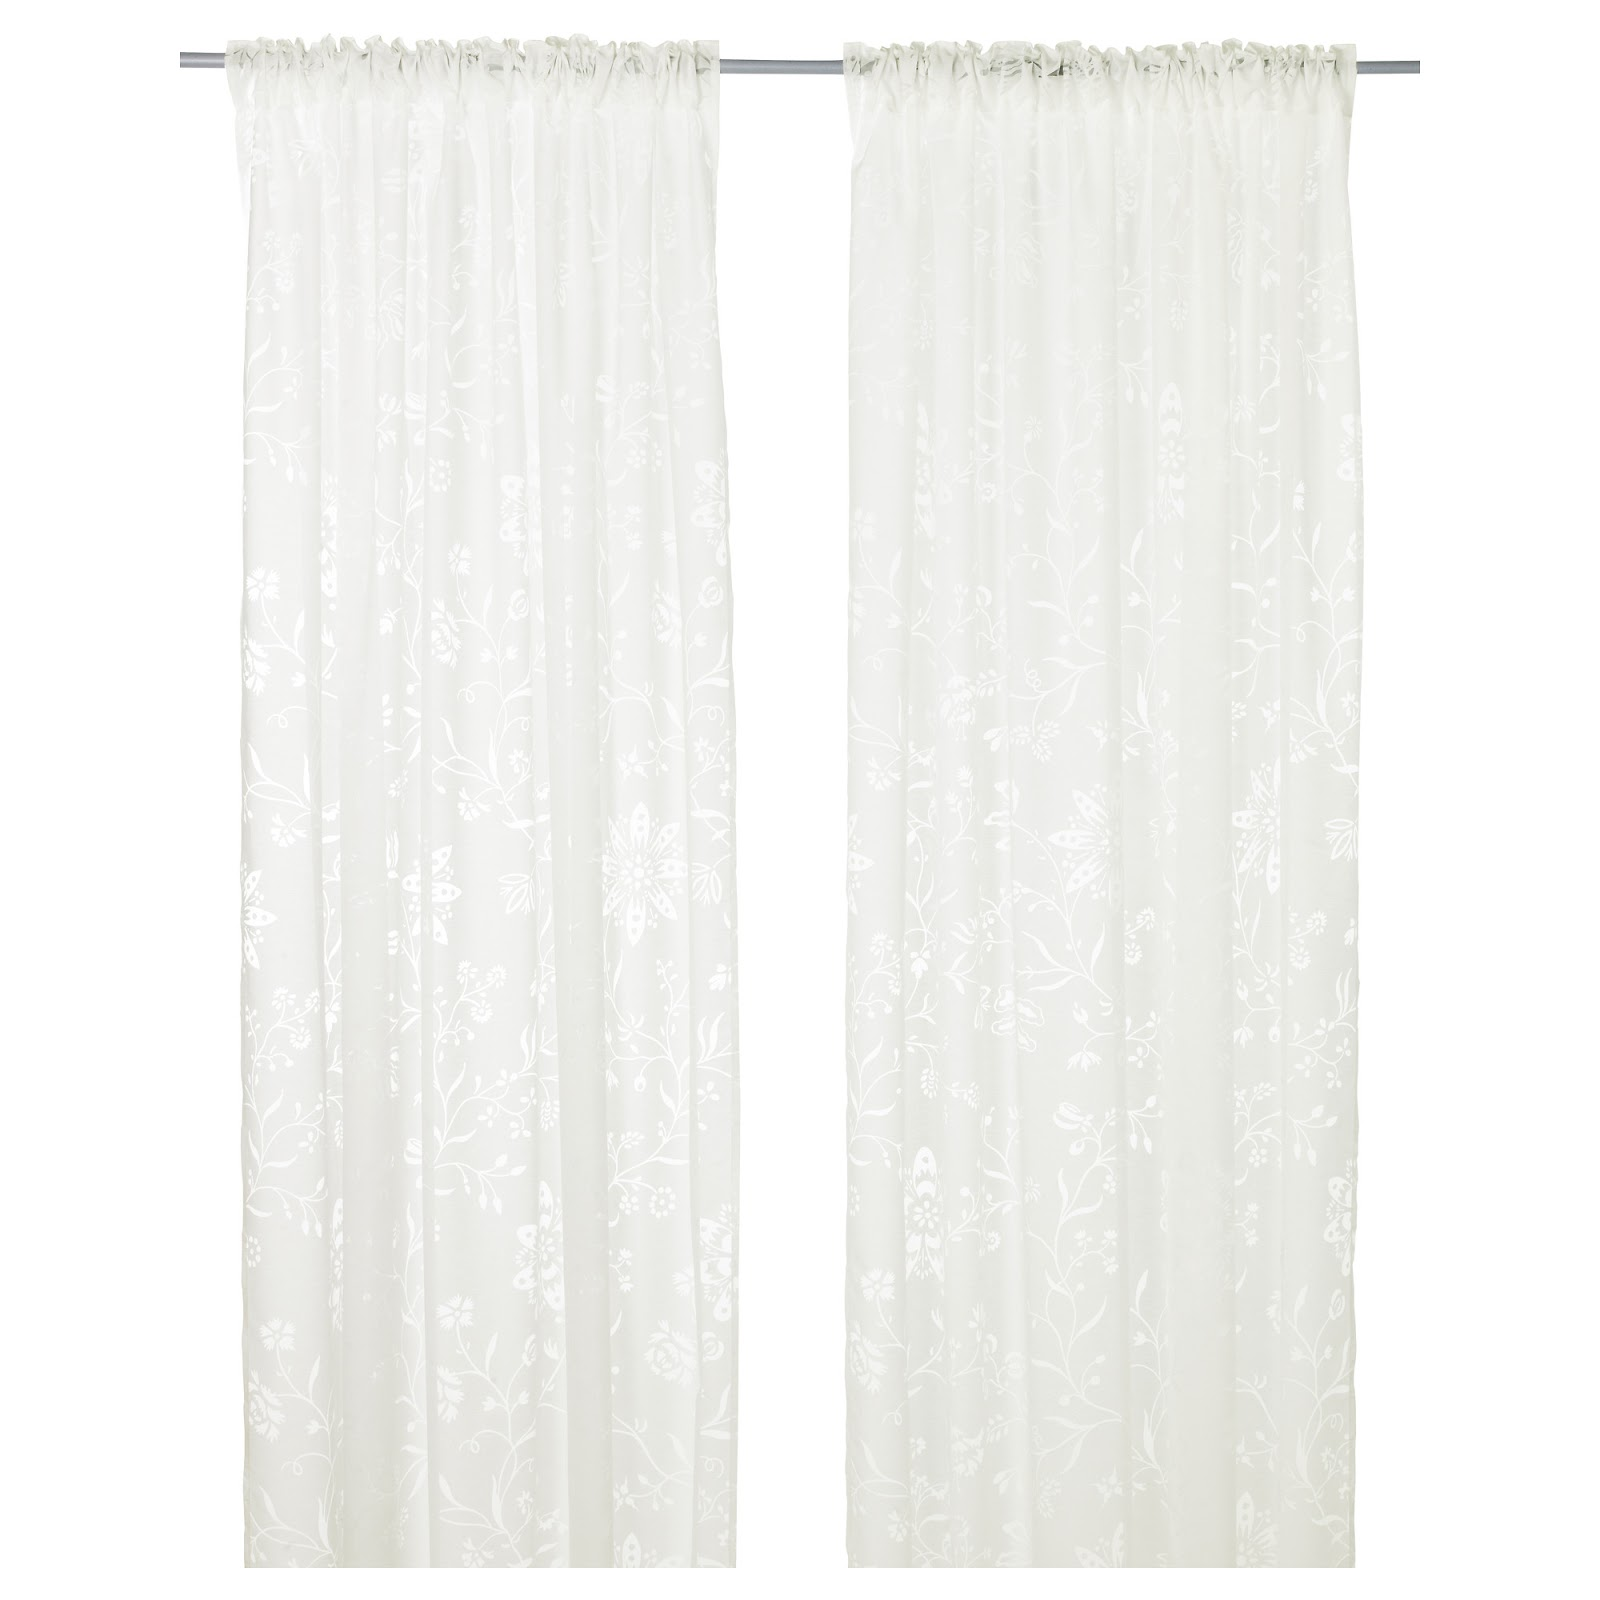 Better Homes And Gardens Shower Curtains Curtain Rod Rods Drapes